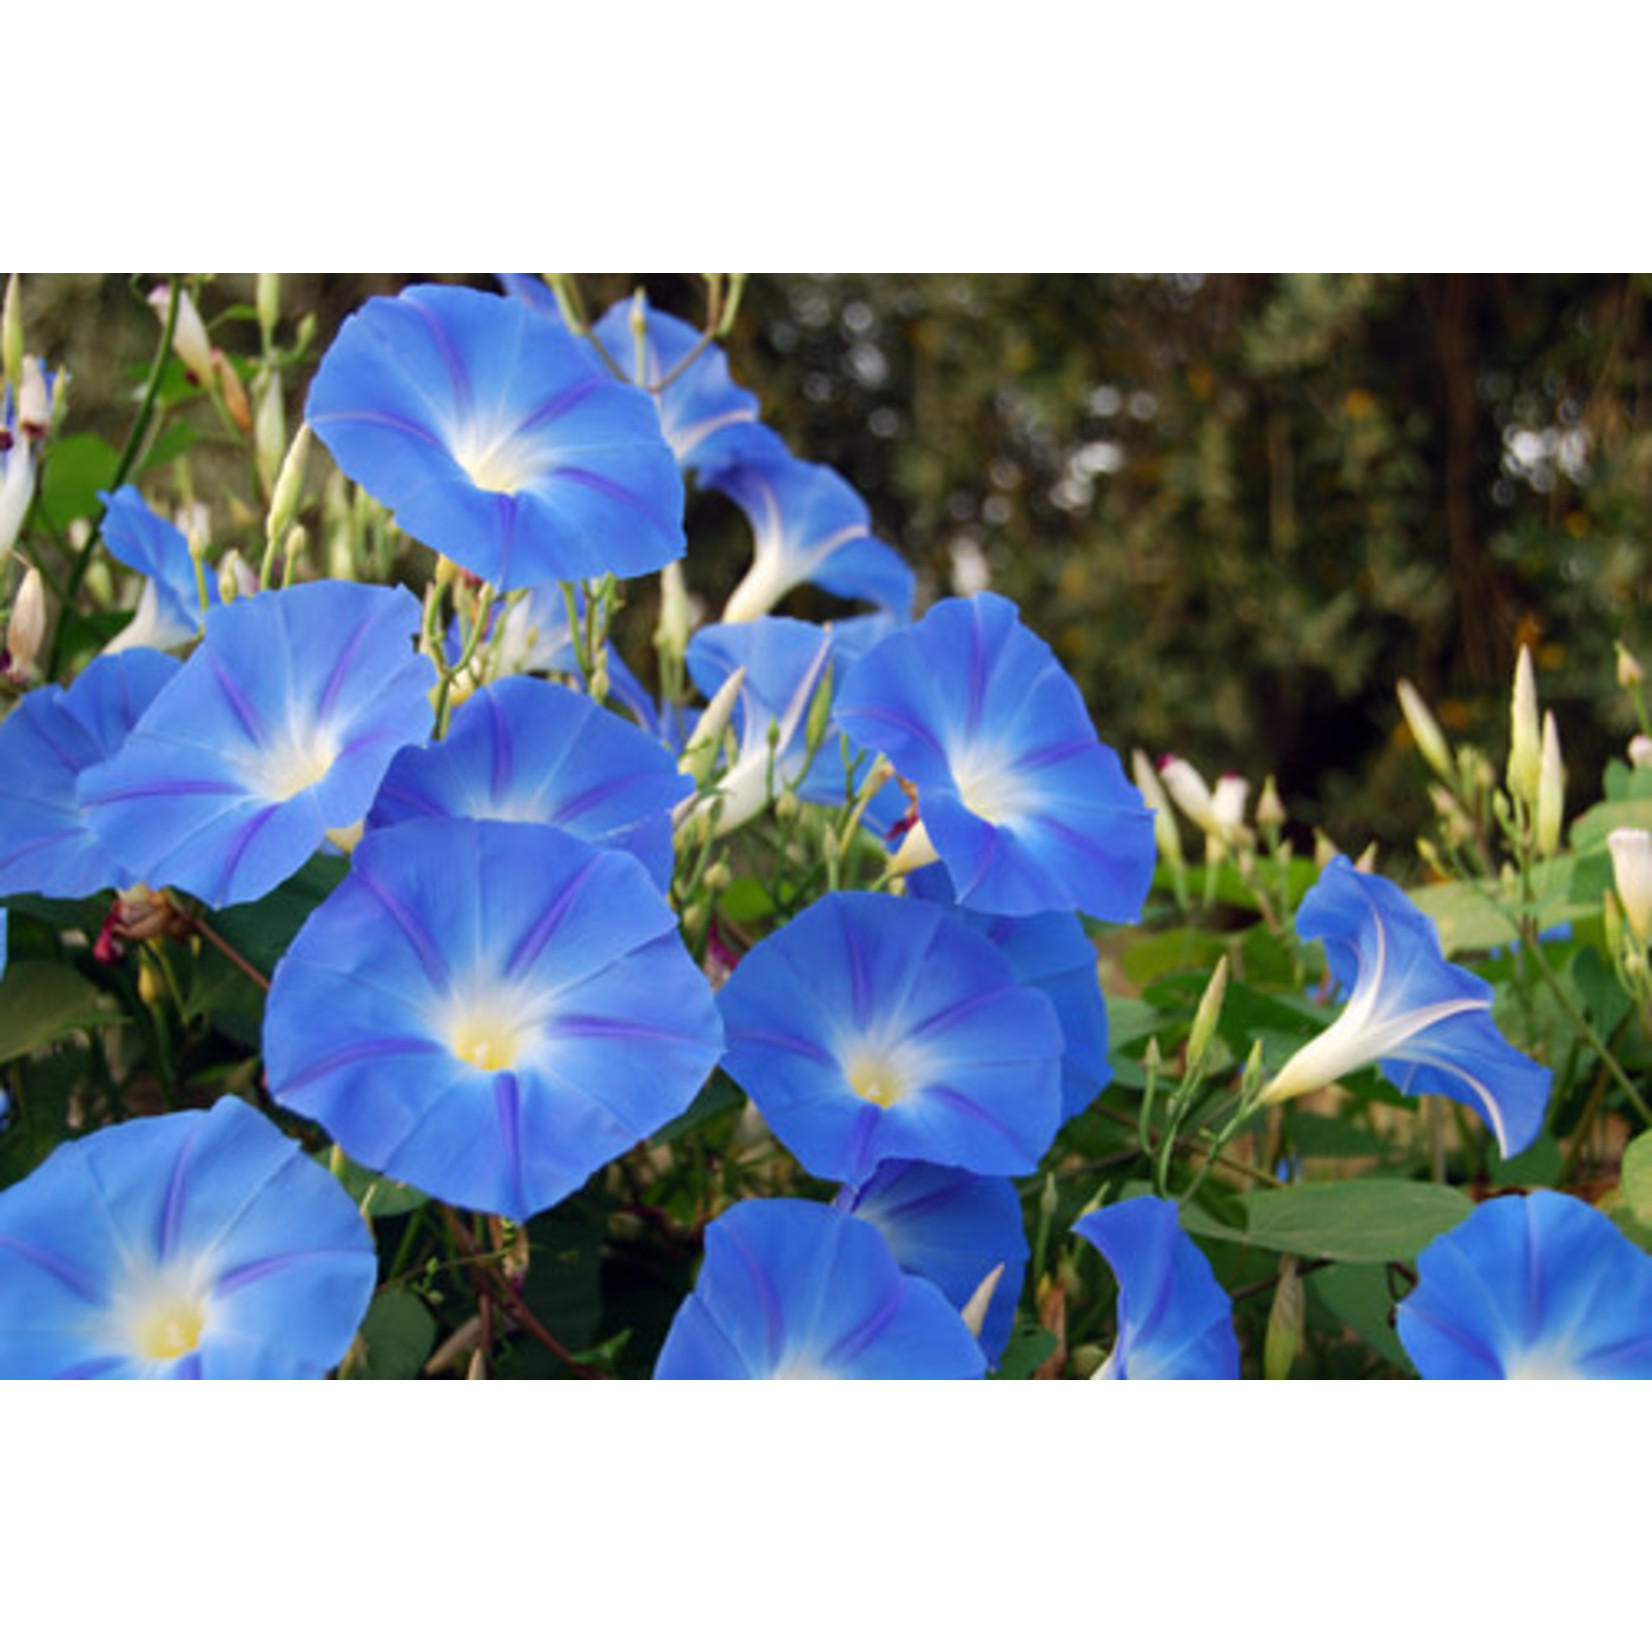 Morning Glory (seed pkg)